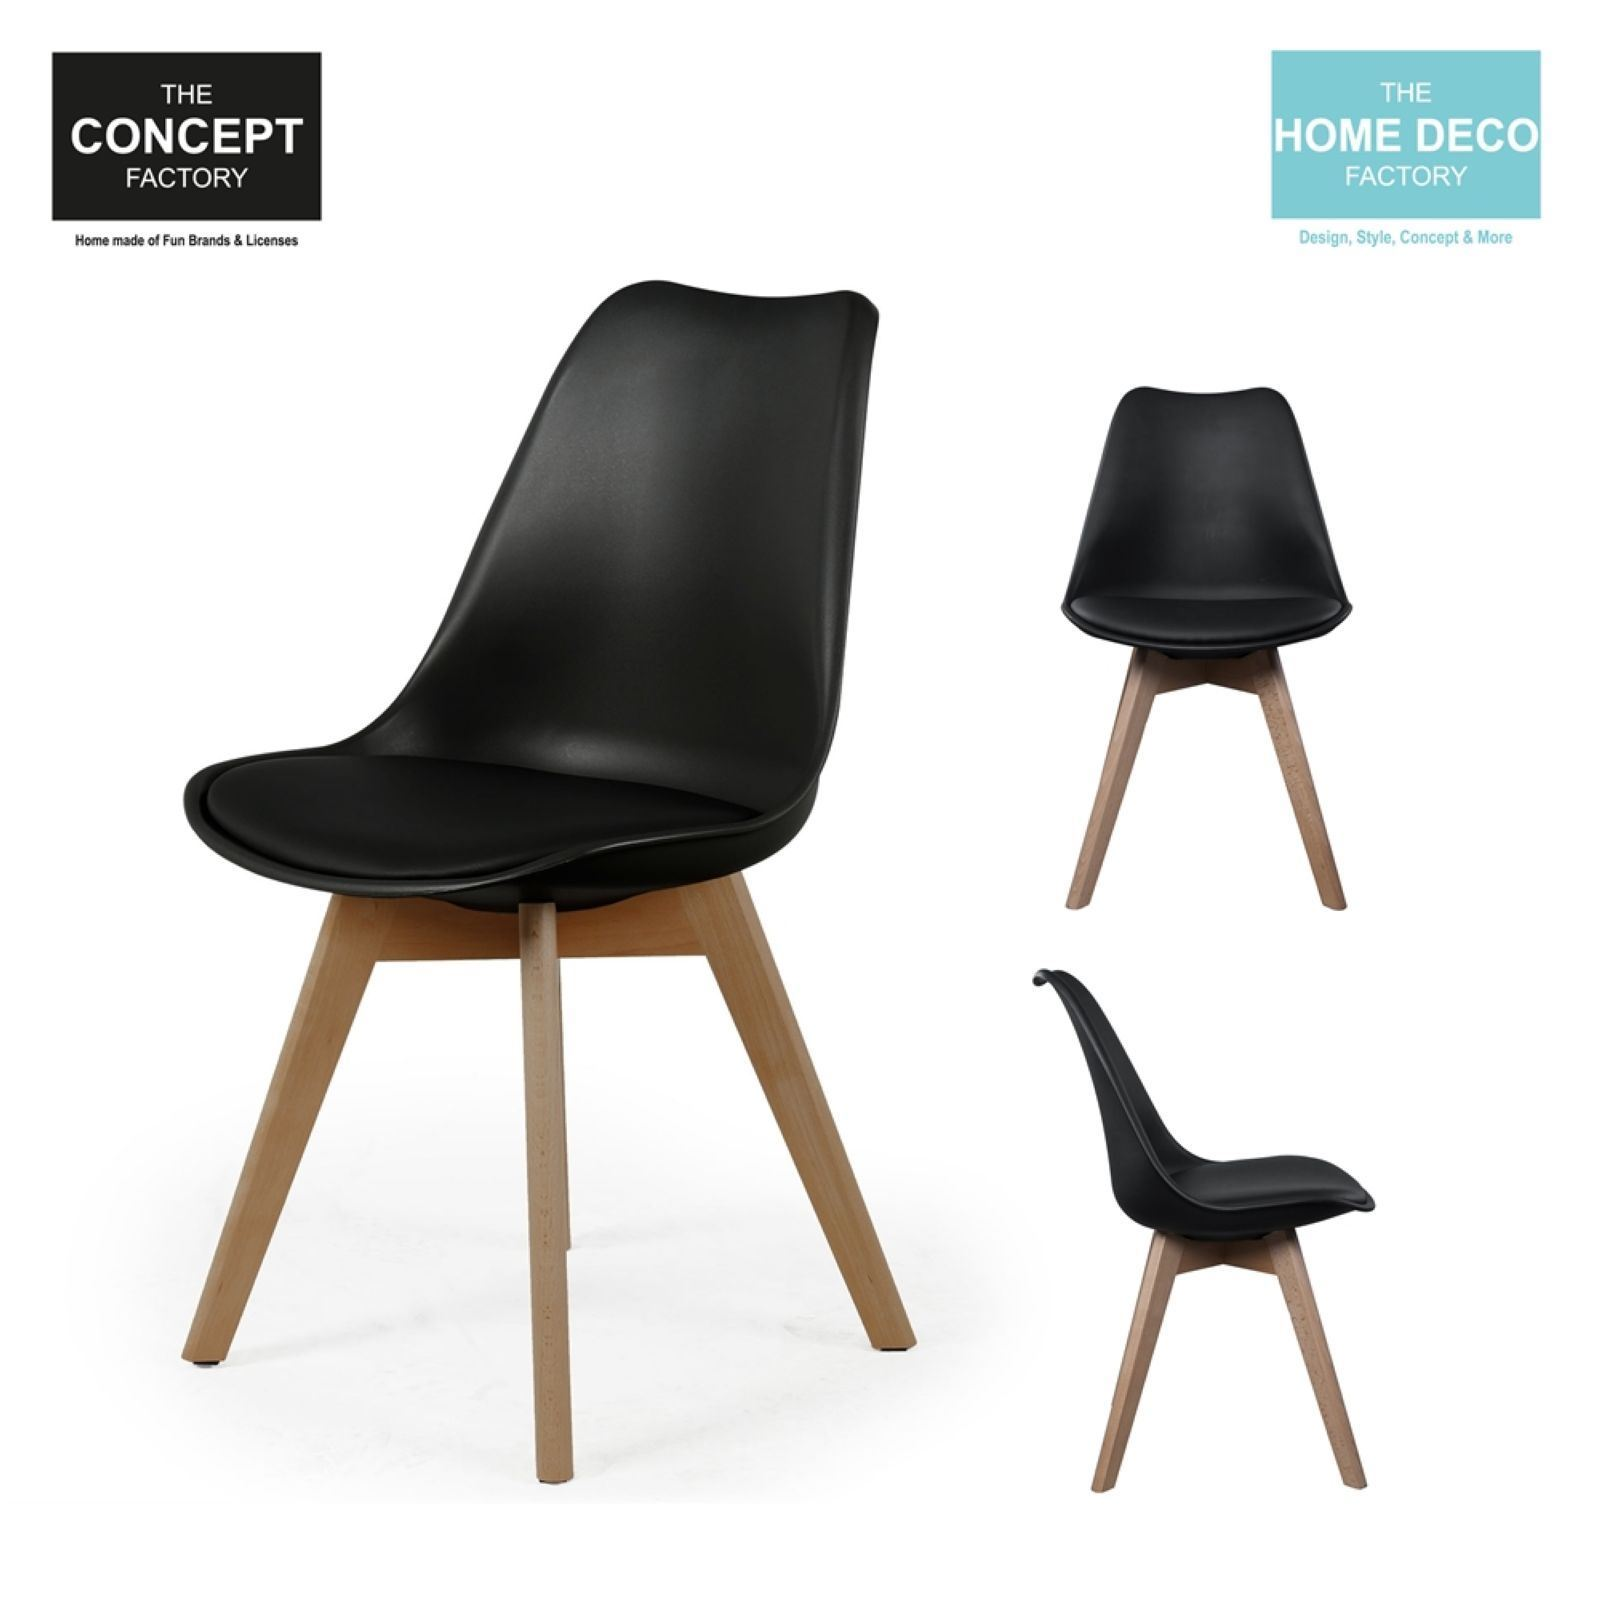 The Home Deco Factory Lot De 2 Chaises Scandinave Avec